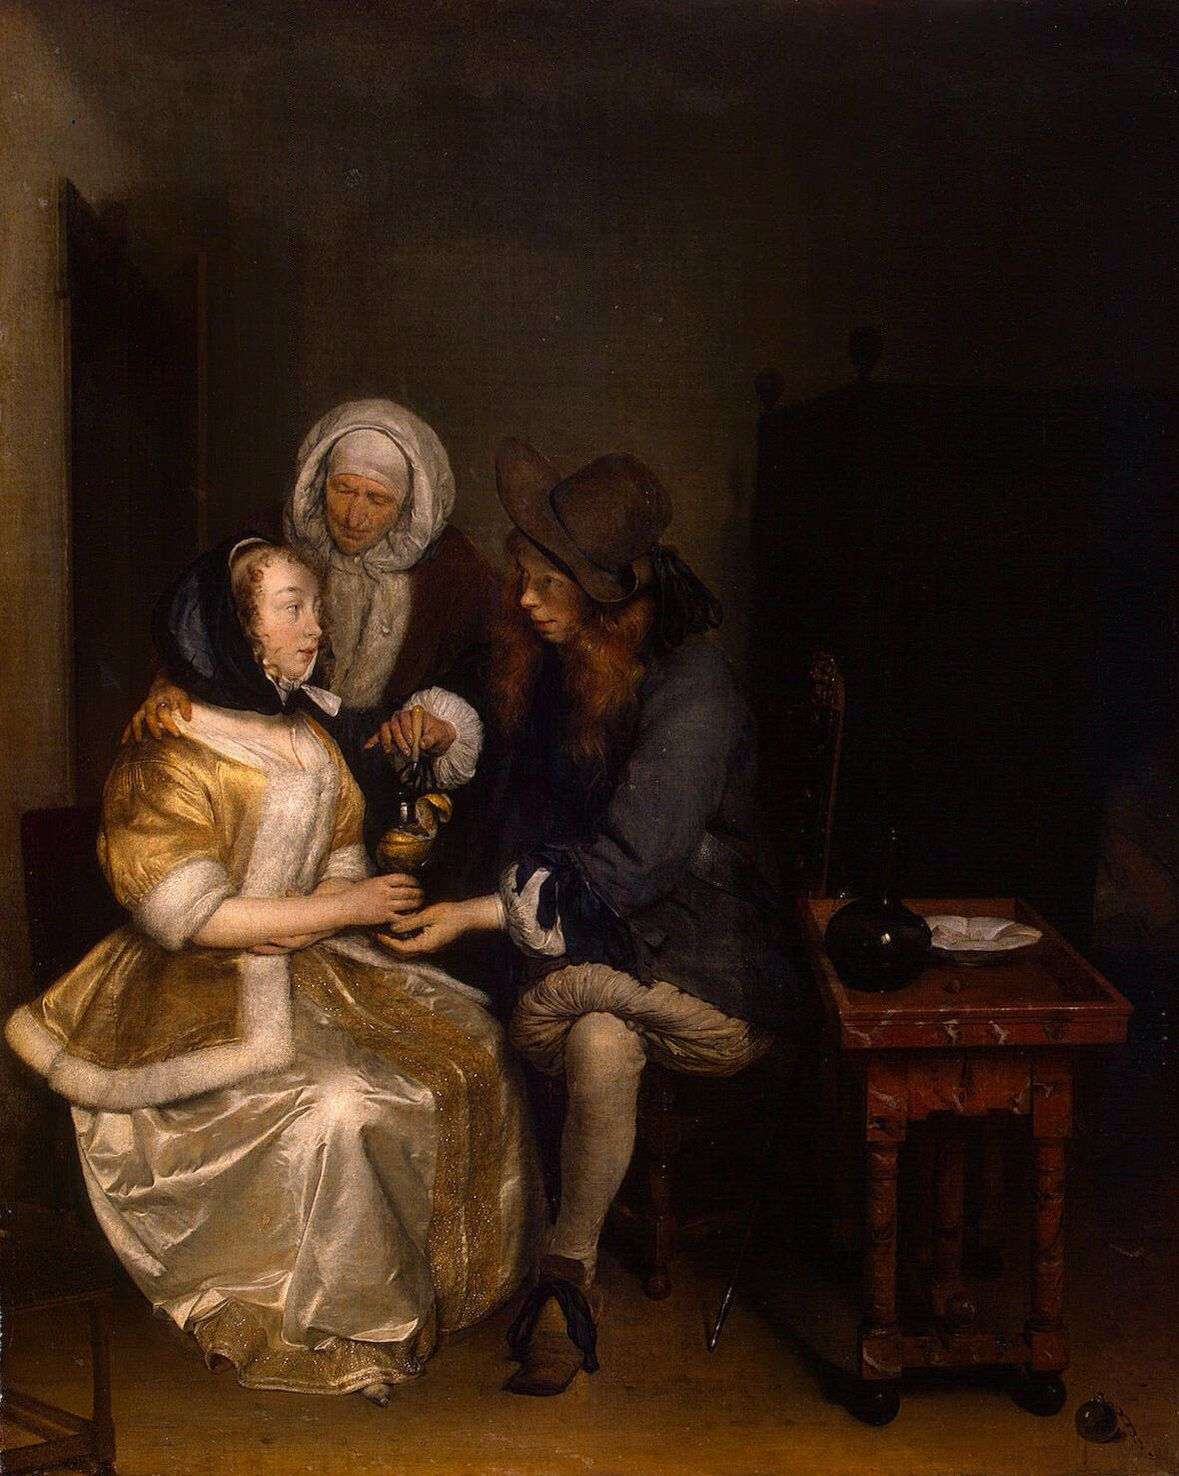 GERARD TER BORCH ( Zwolle 1617 - Deventer 1681 ). A GLASS OF LEMONADE. oil on canvas. 67 × 54 cm. Provenance : 1814, Malmaison, acquired by Hermitage from the Empress Josephine Collection . St. Petersburg. Hermitage. Inv. No. 881.